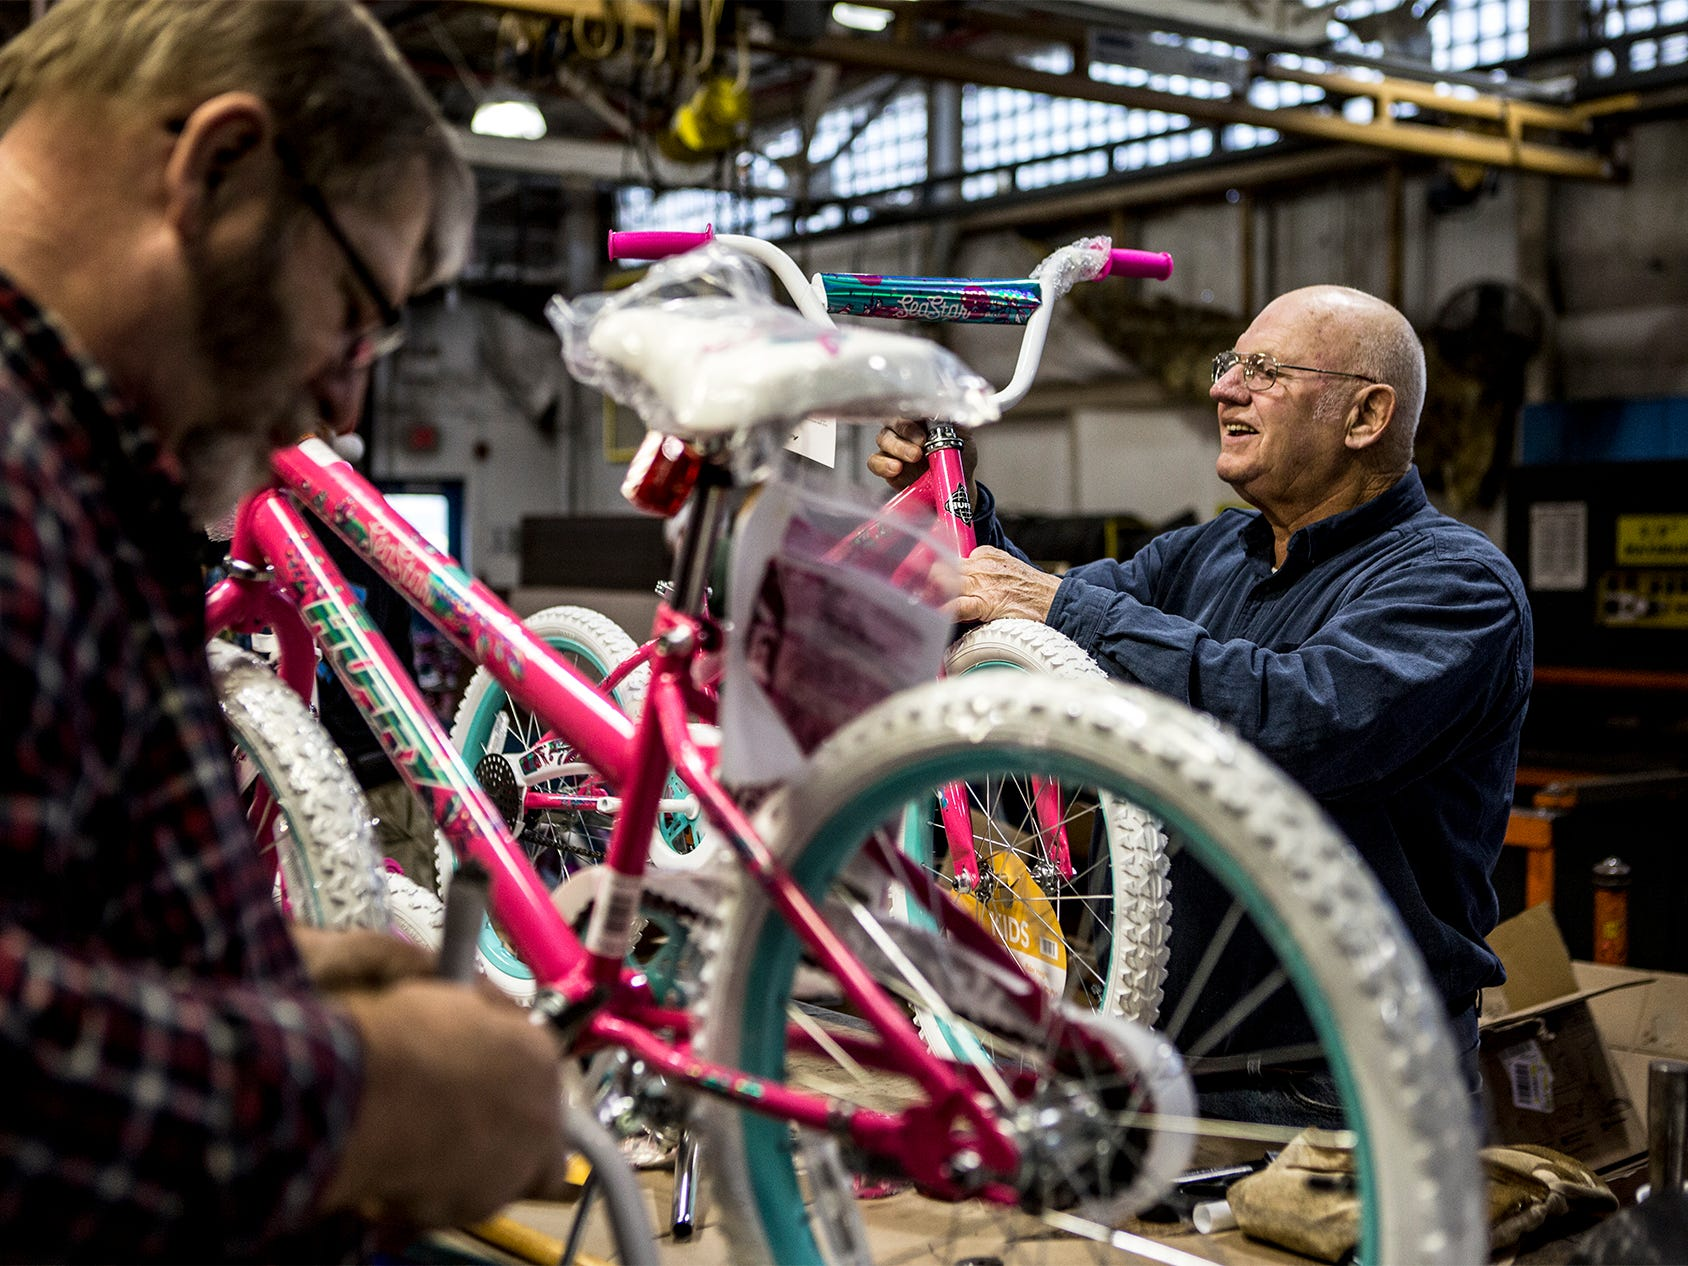 For the fourteenth year workers at Owen Corning put together bikes for kids in need to be given out at the Salvation Army's toy drive later this month. This year 138 bikes were assembled by Owens Corning and Aboris.